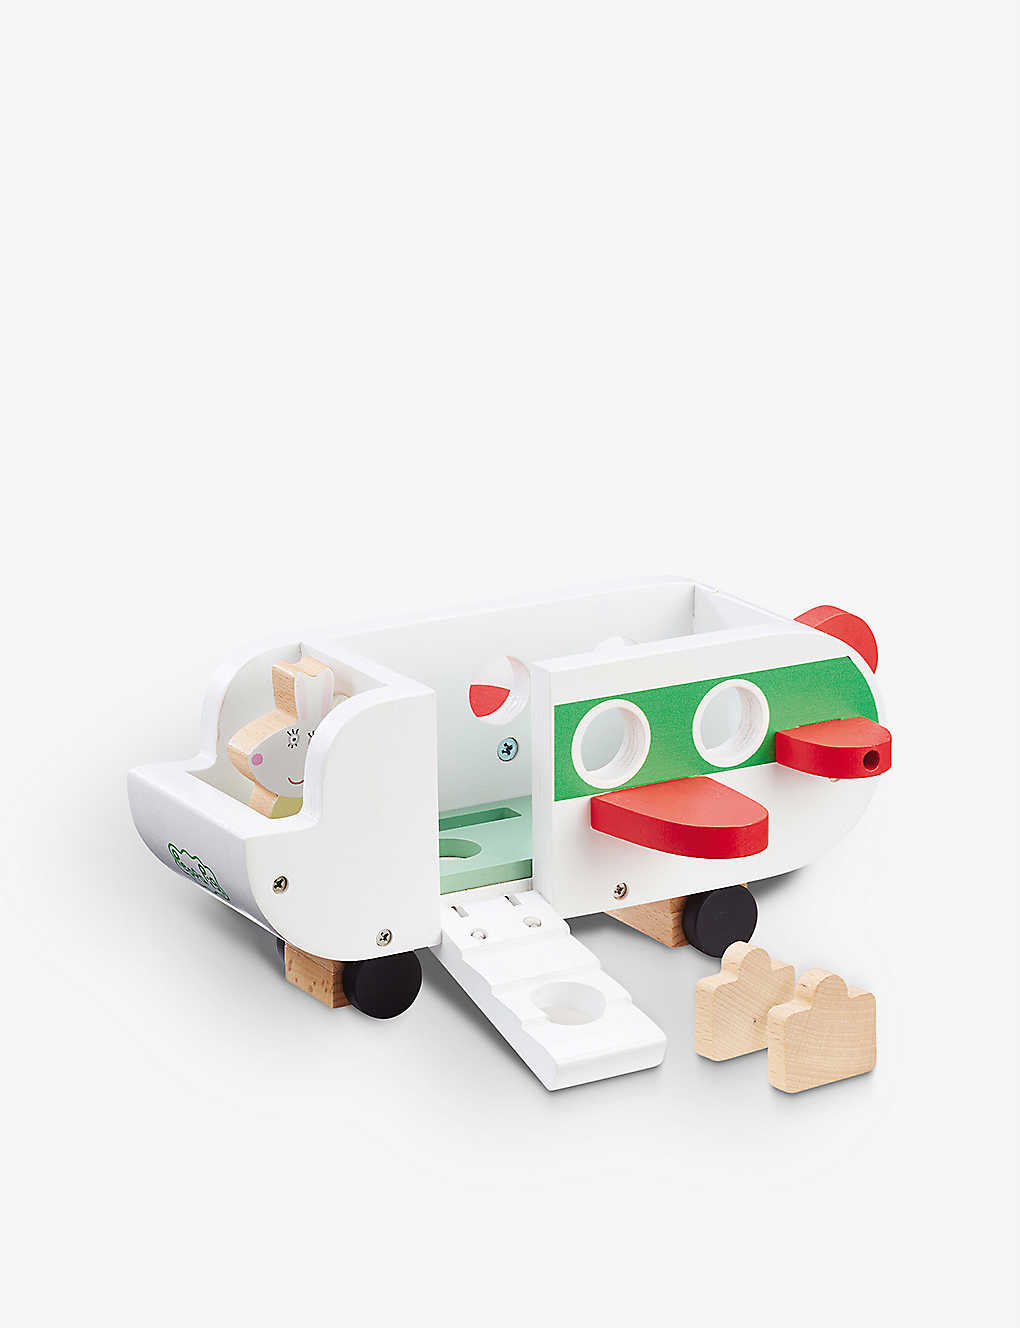 Peppa pig wooden plane